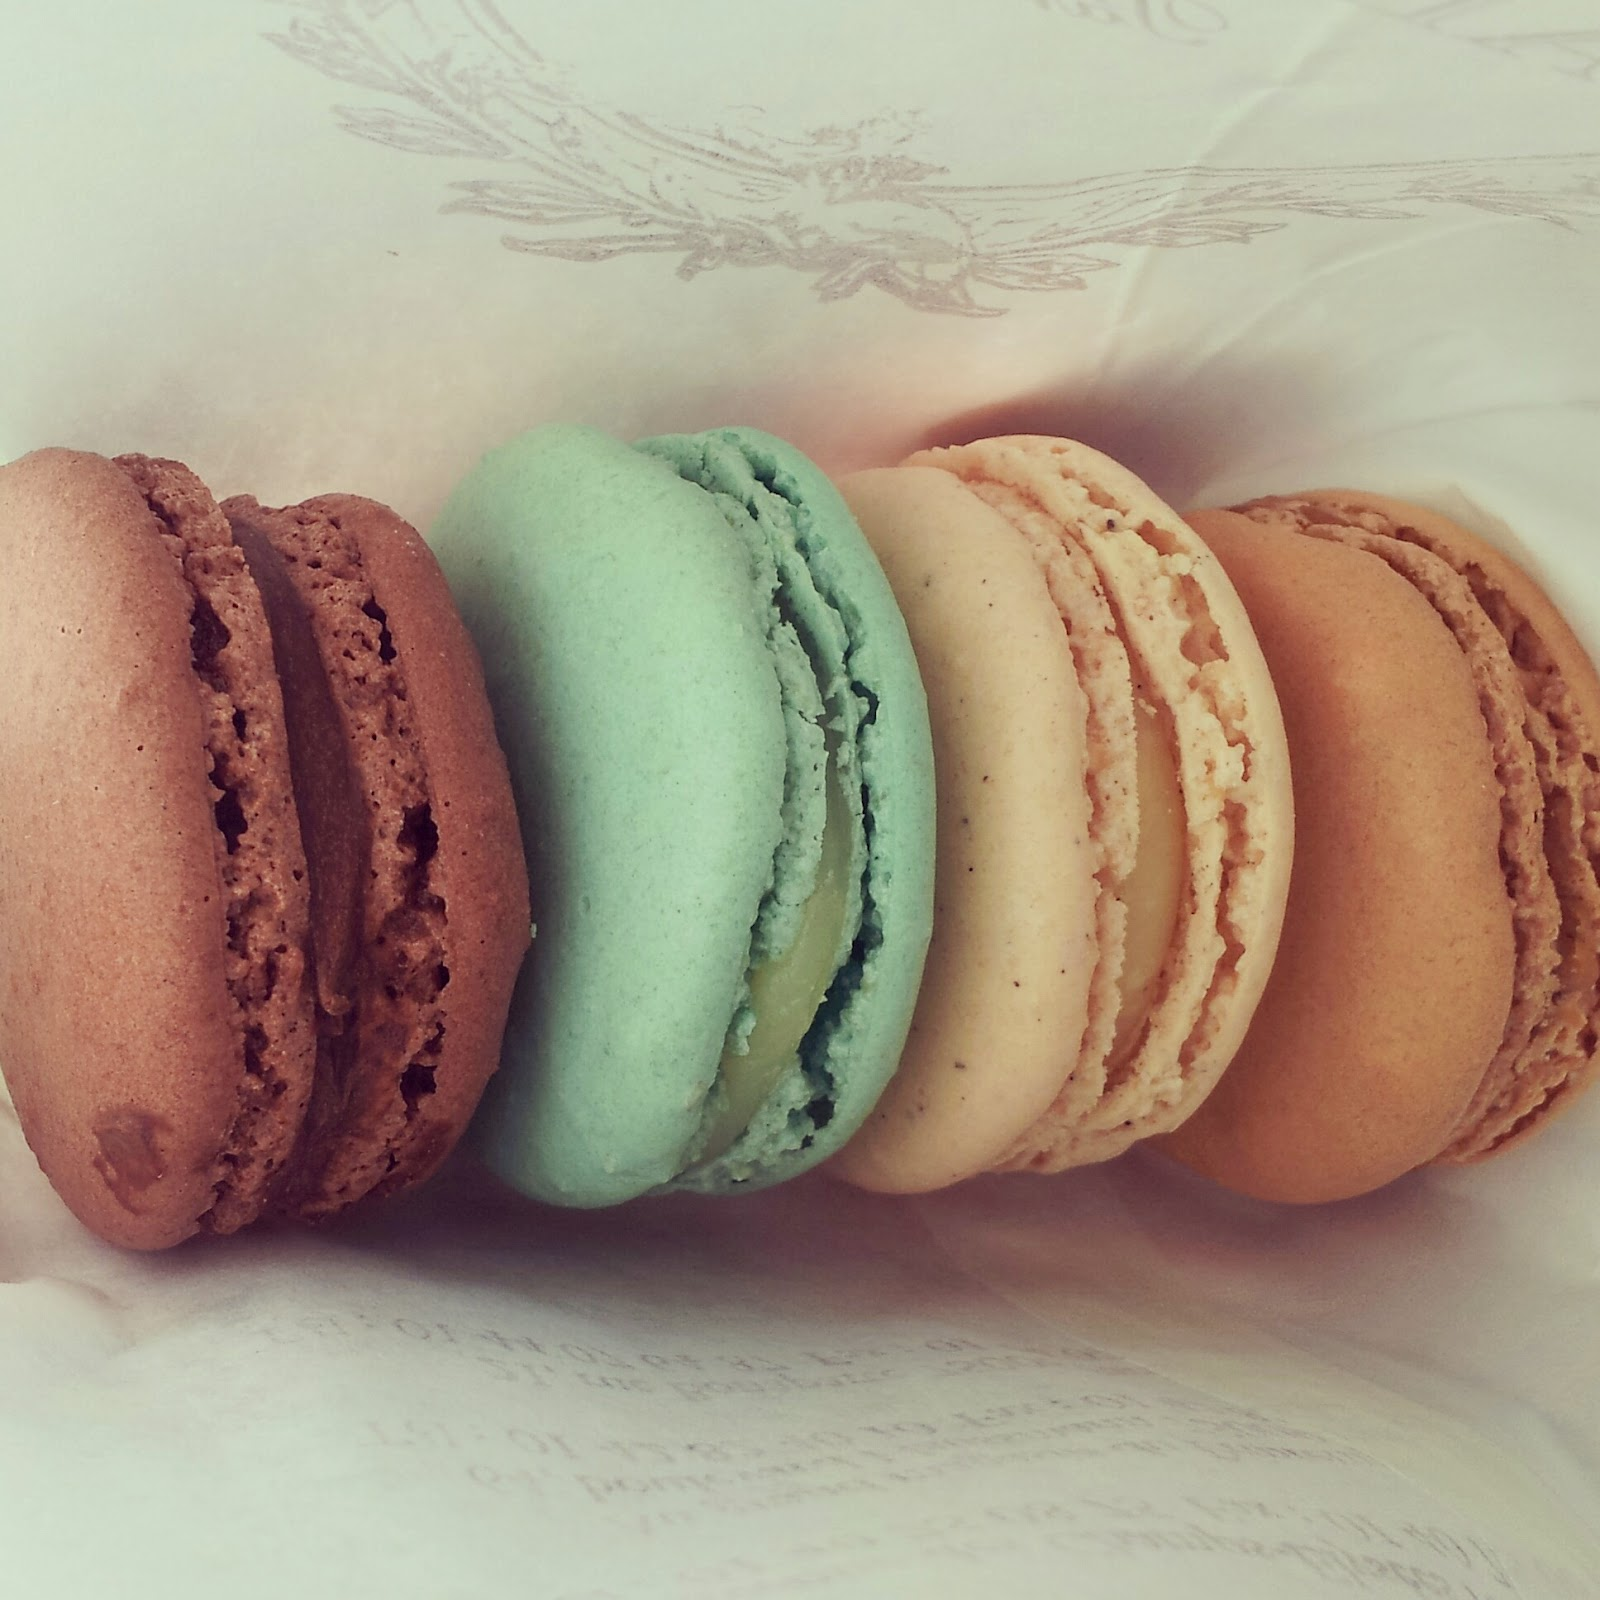 Foodie-in-training: Macarons